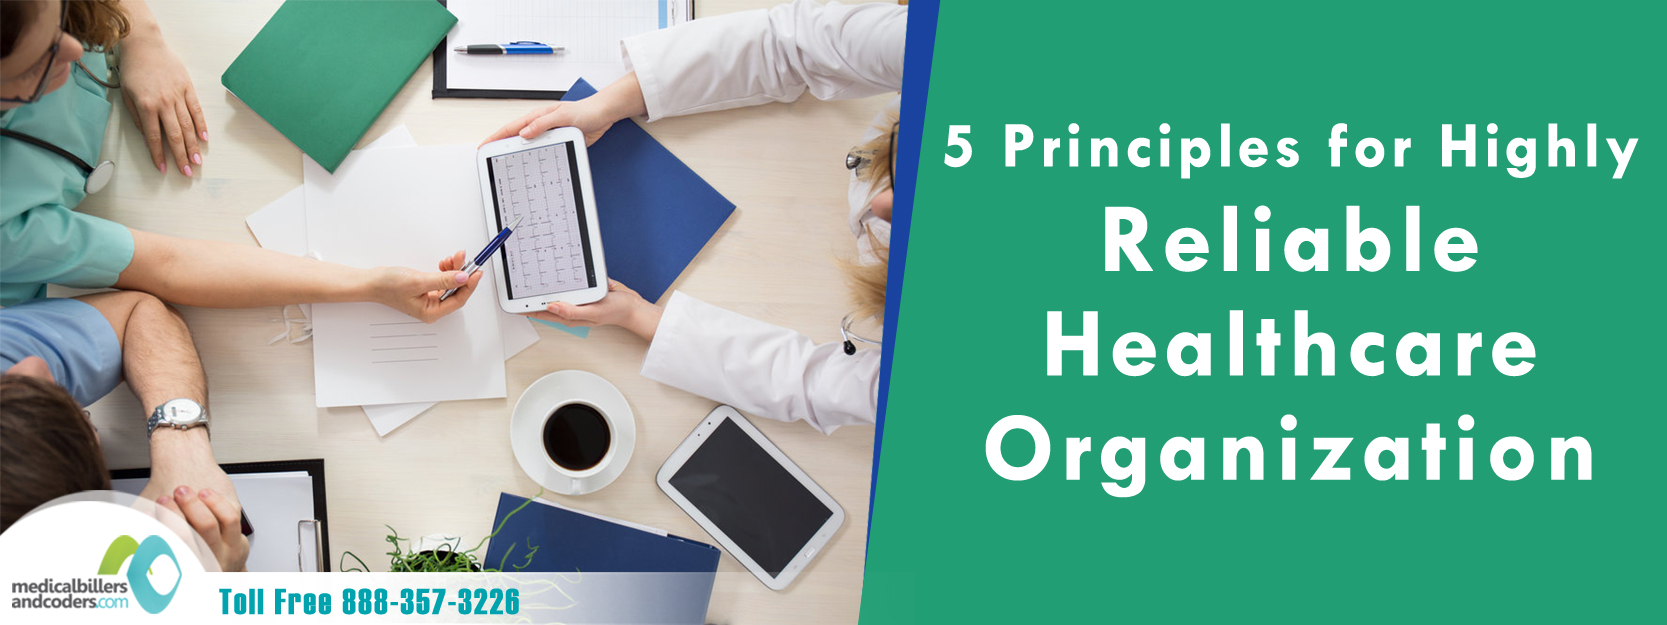 5 Principles for Highly Reliable Healthcare Organization